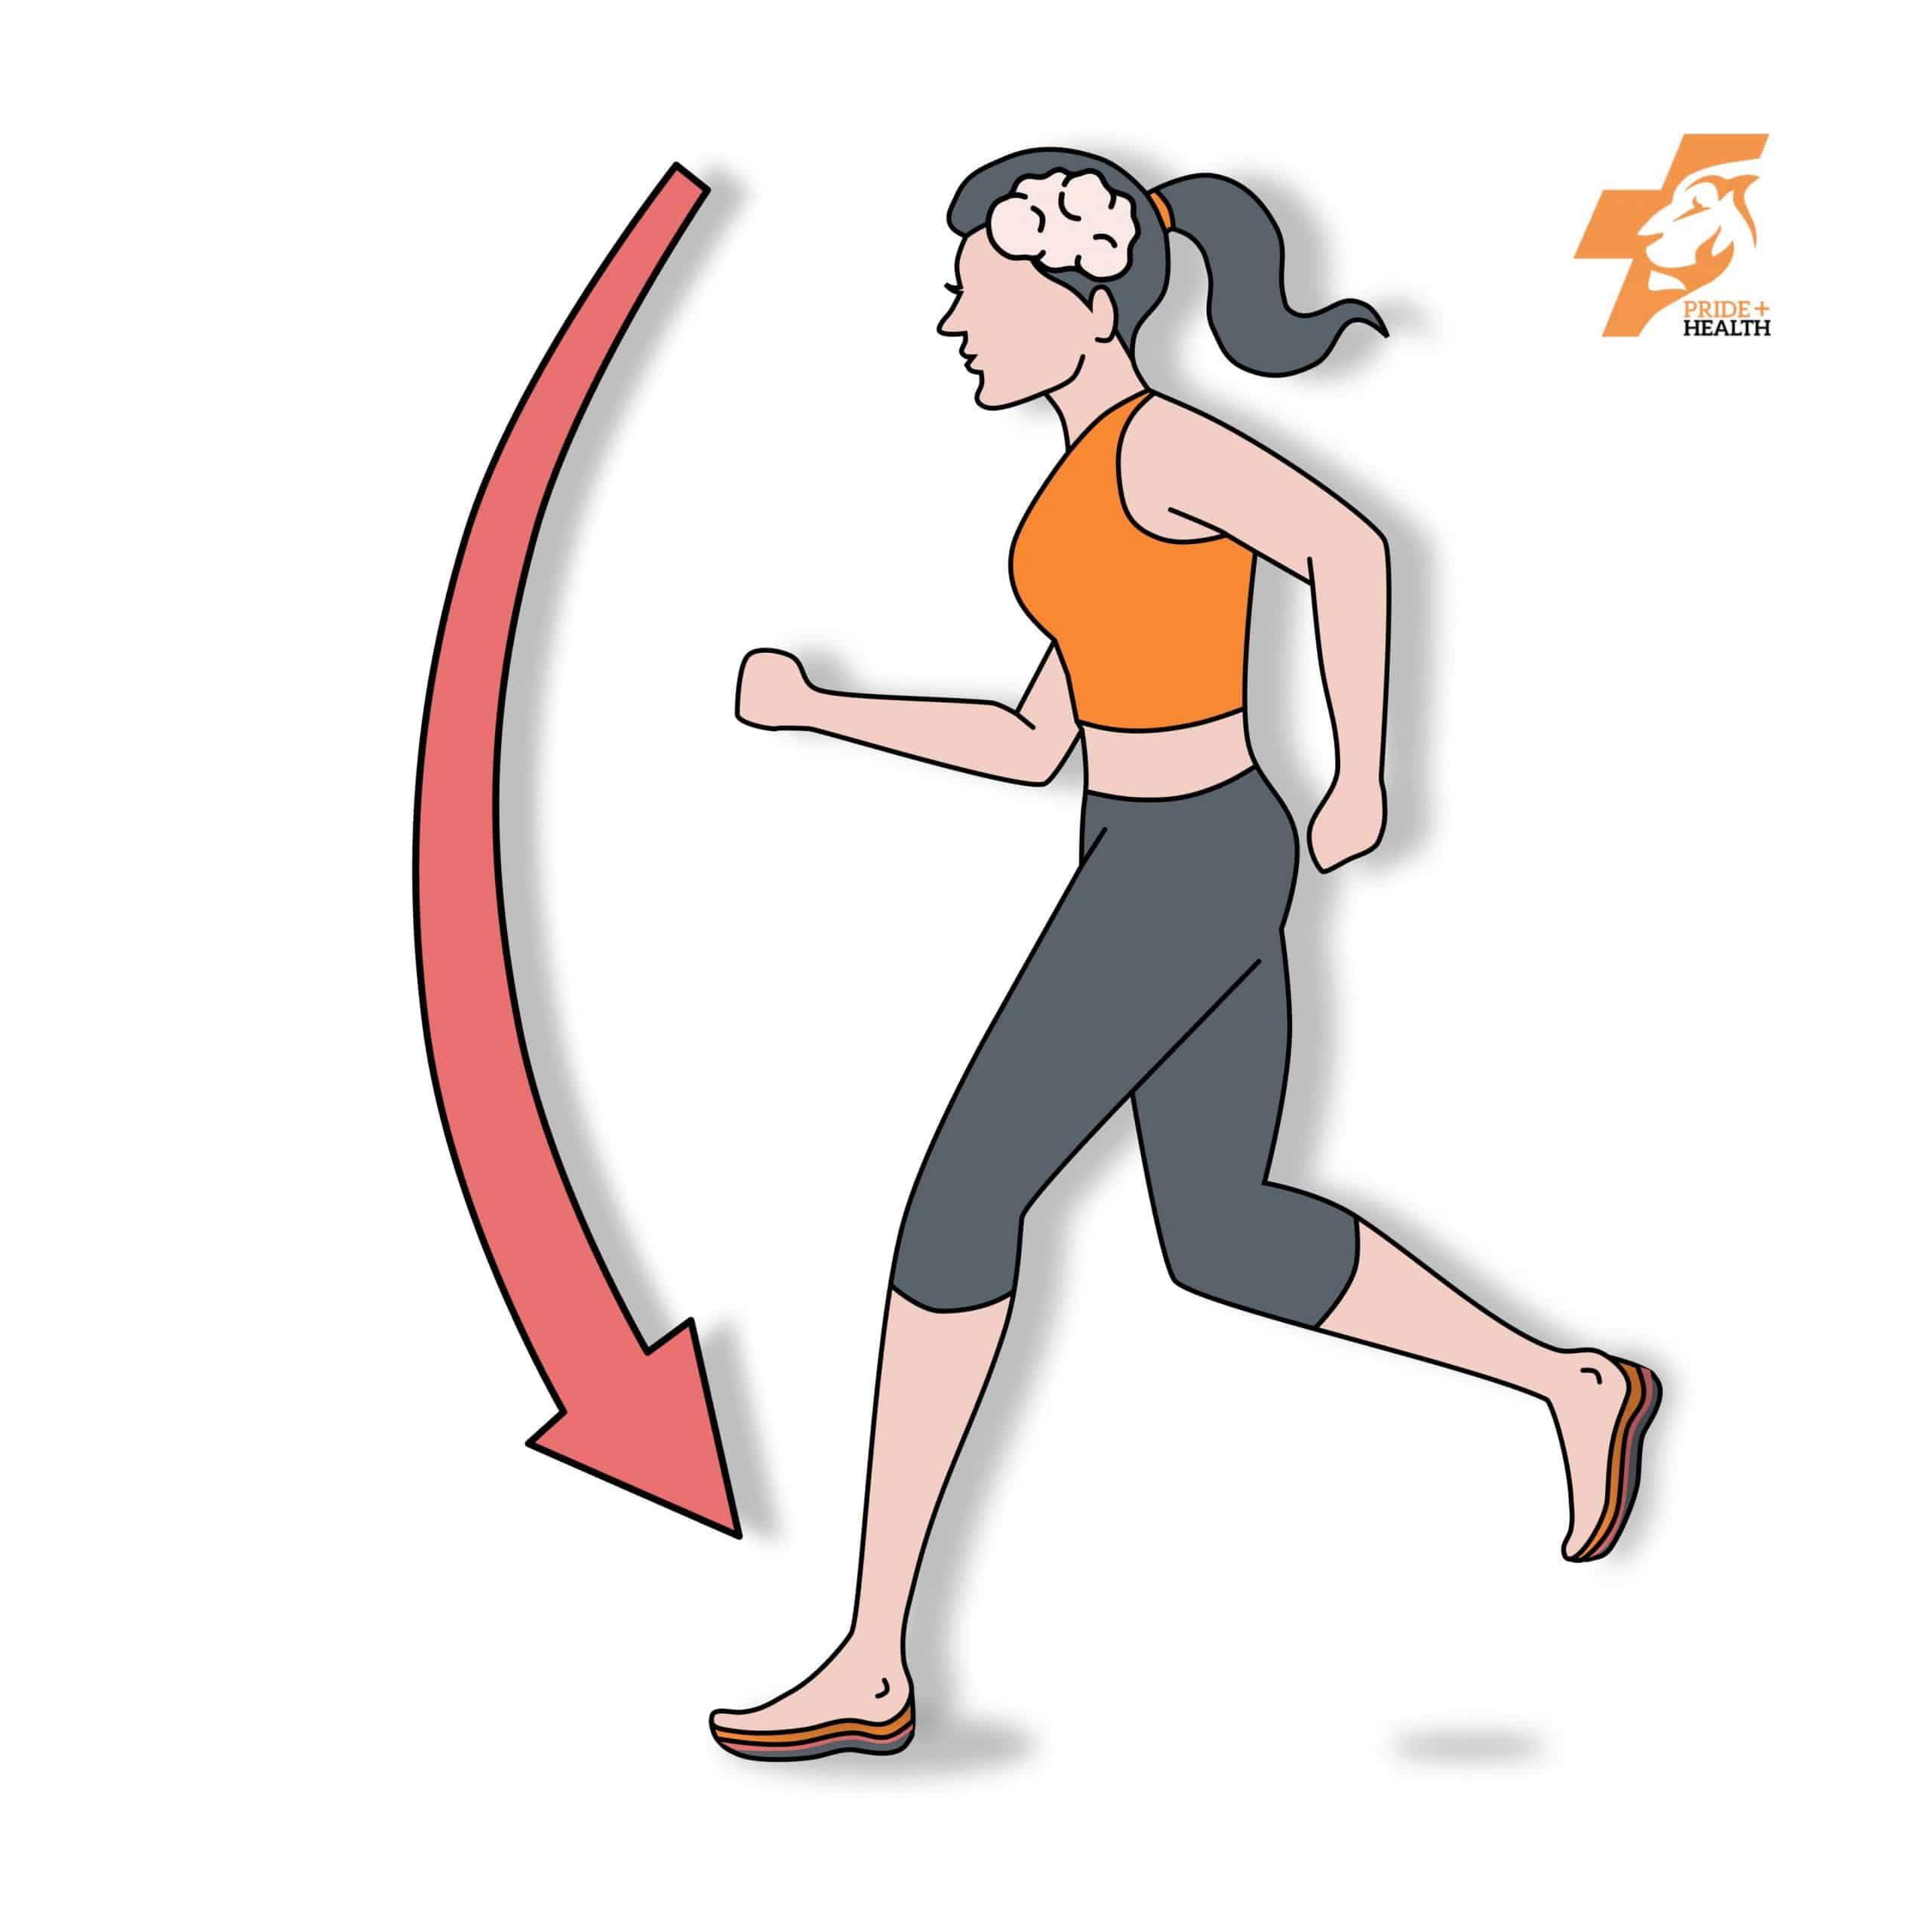 orthotic changes how we consciously and unconsciously perceive and move our feet